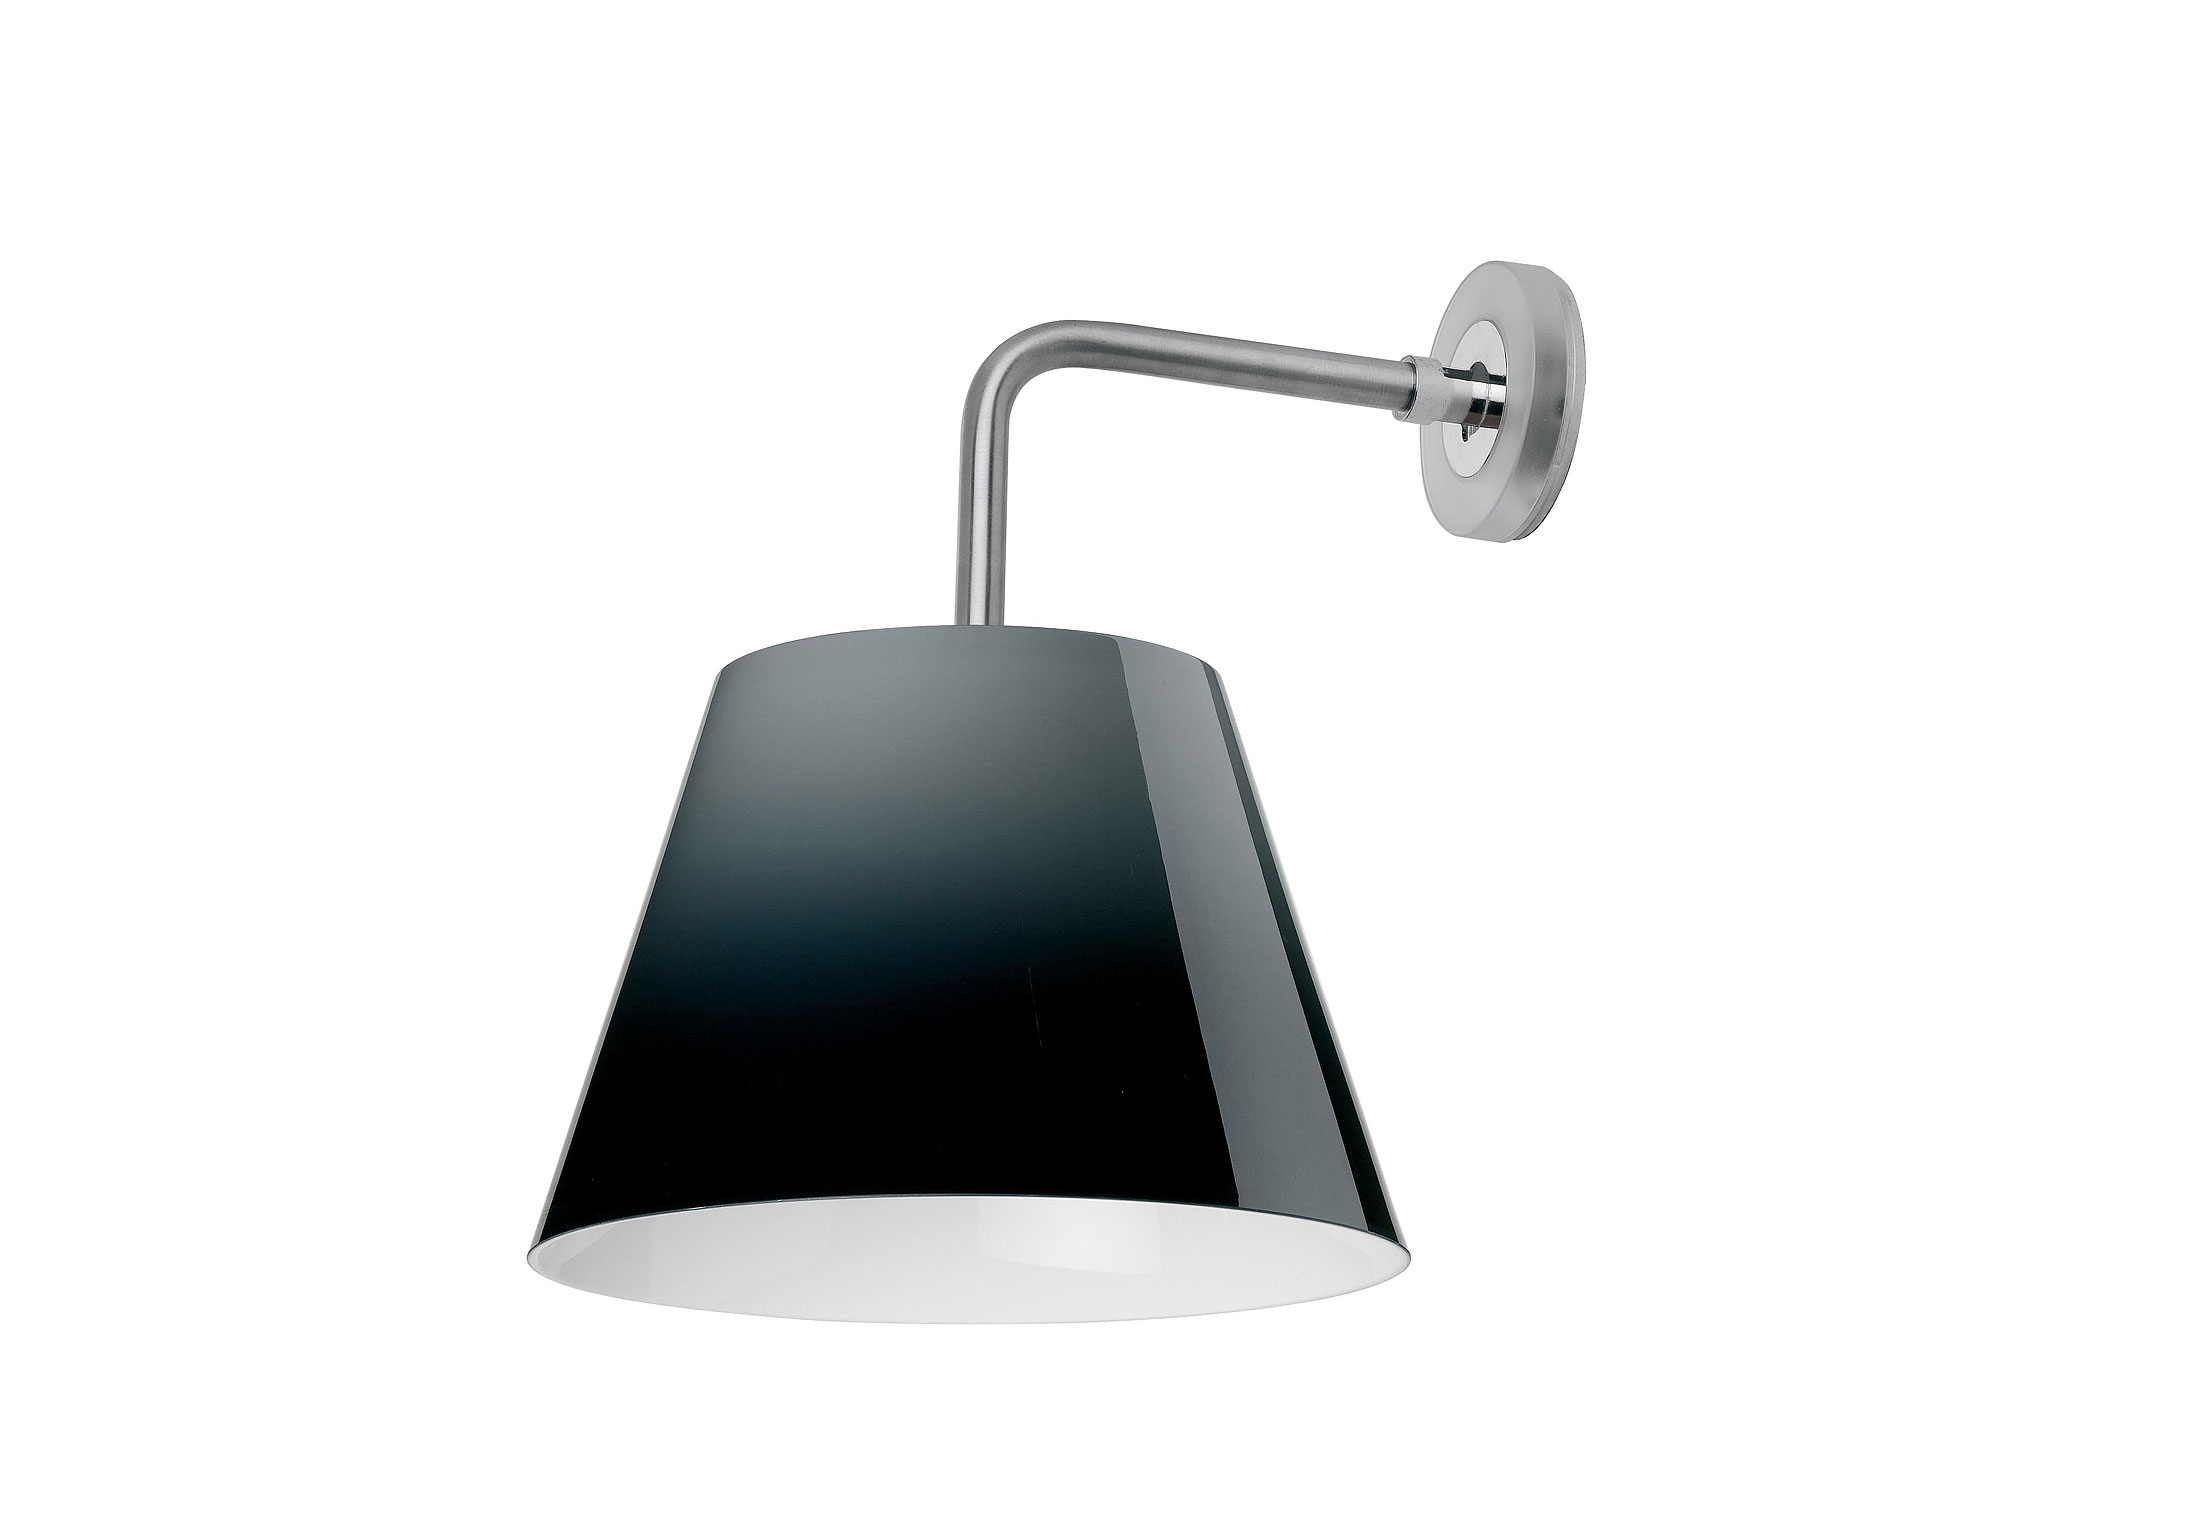 Romeo outdoor w outdoor lamp by flos stylepark romeo outdoor w outdoor lamp aloadofball Choice Image